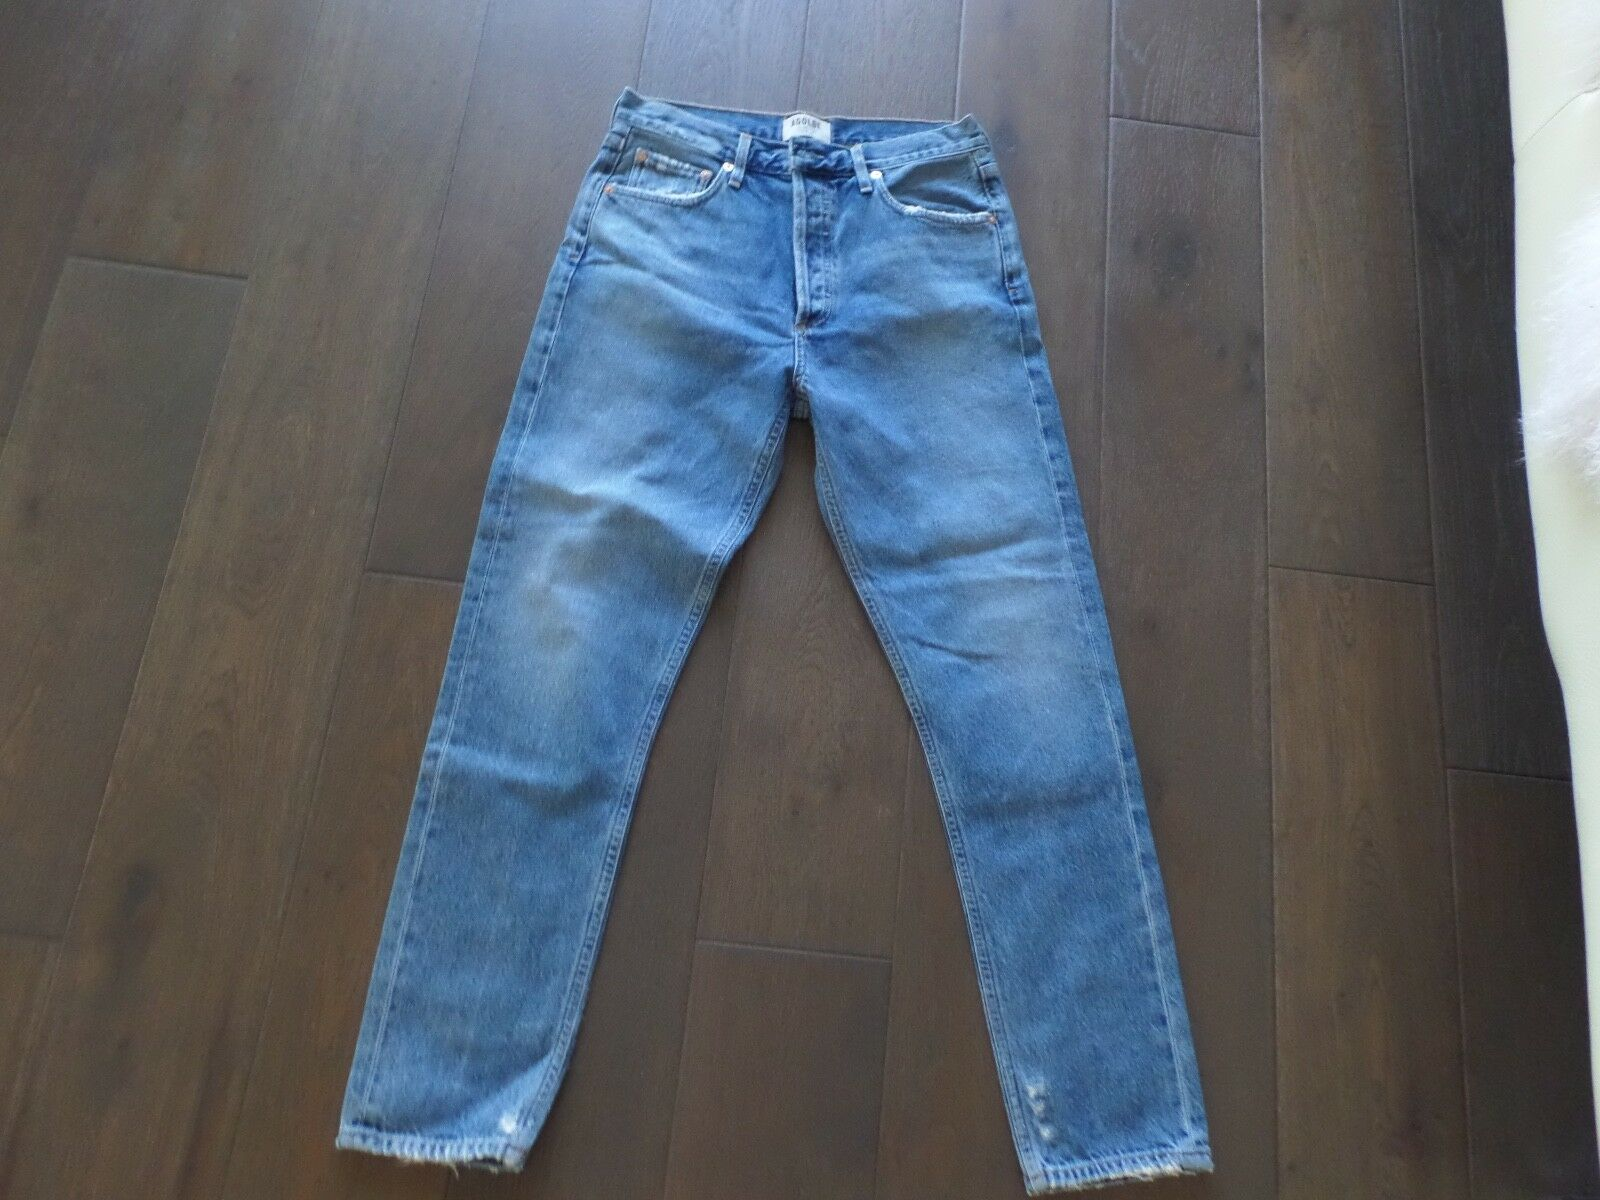 New Latest AG ADRIANO goldSCHMEID bluee denim high waisted classic fit size 28